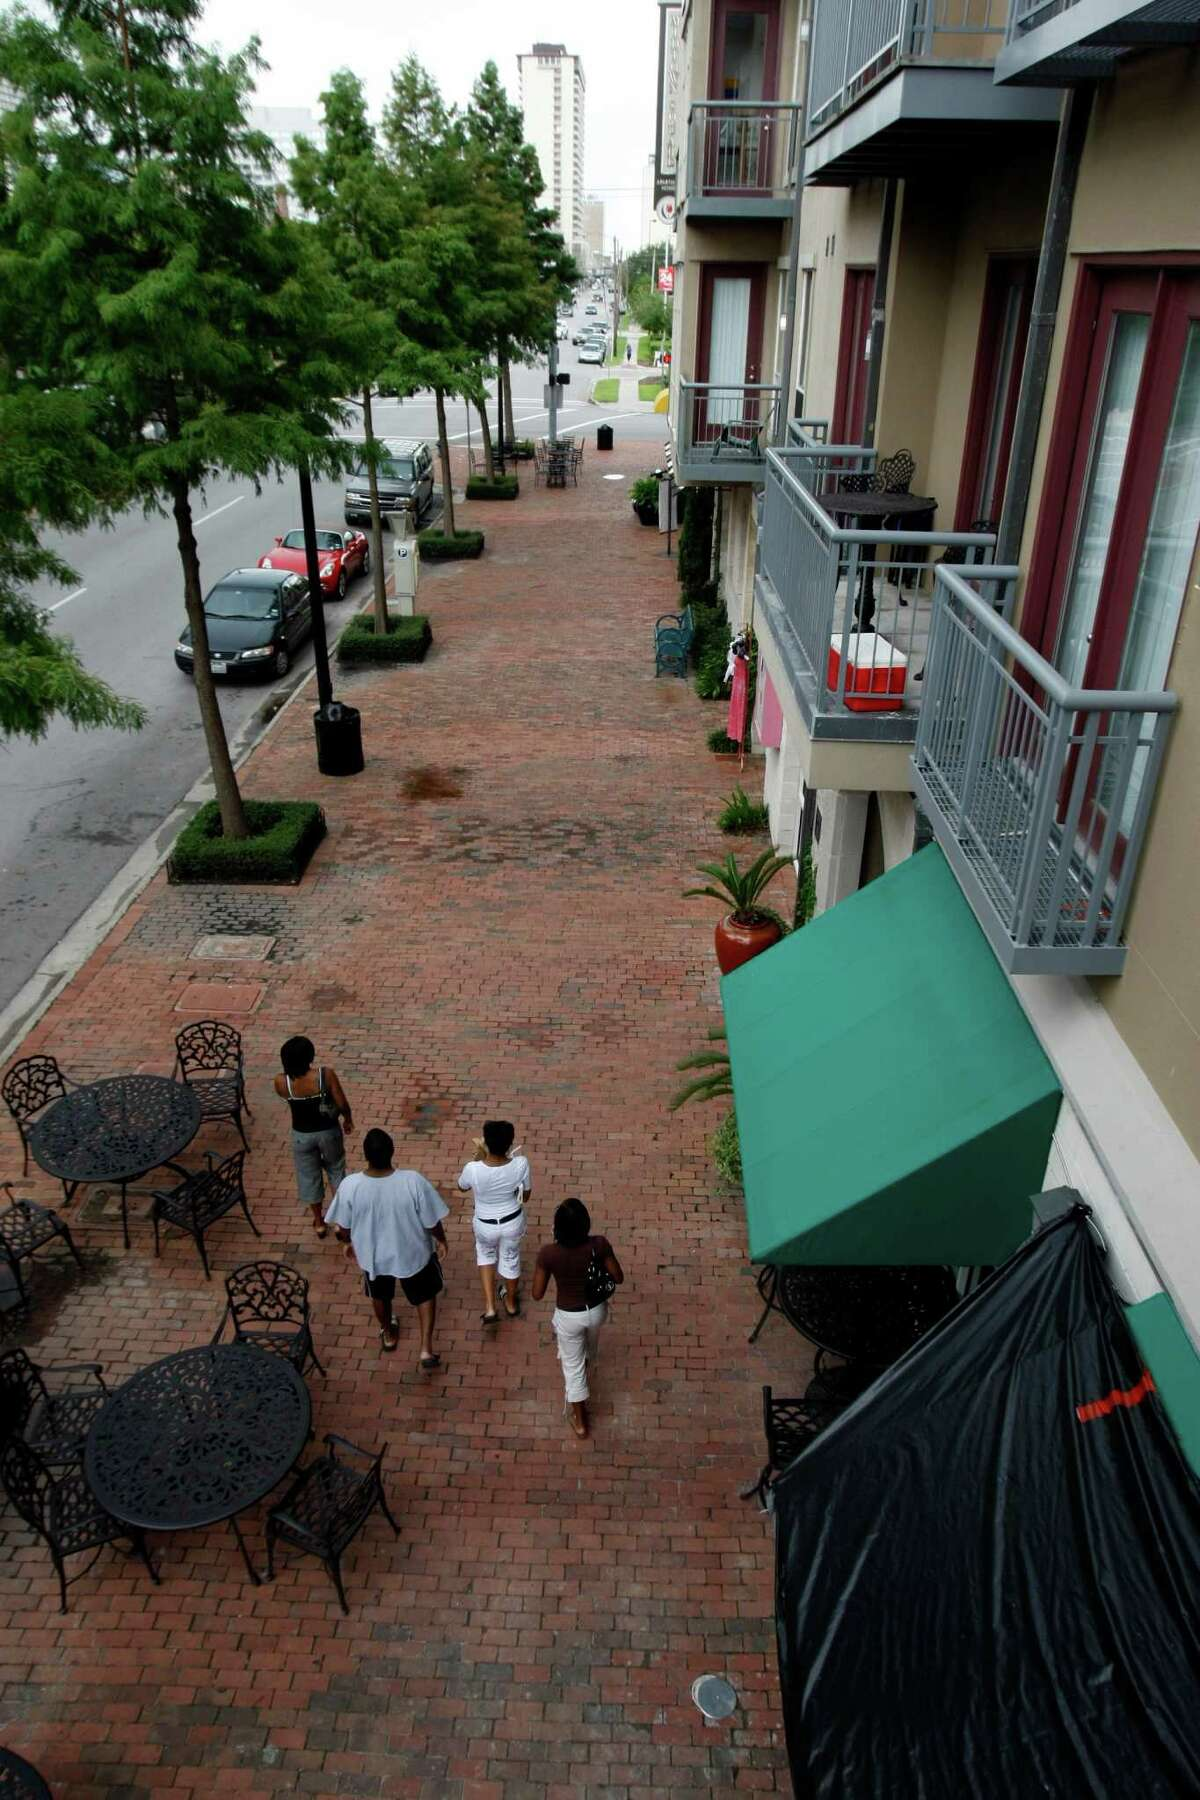 Houston has guidelines and regulations for development to promote walkable, transit-oriented development, as in Midtown.